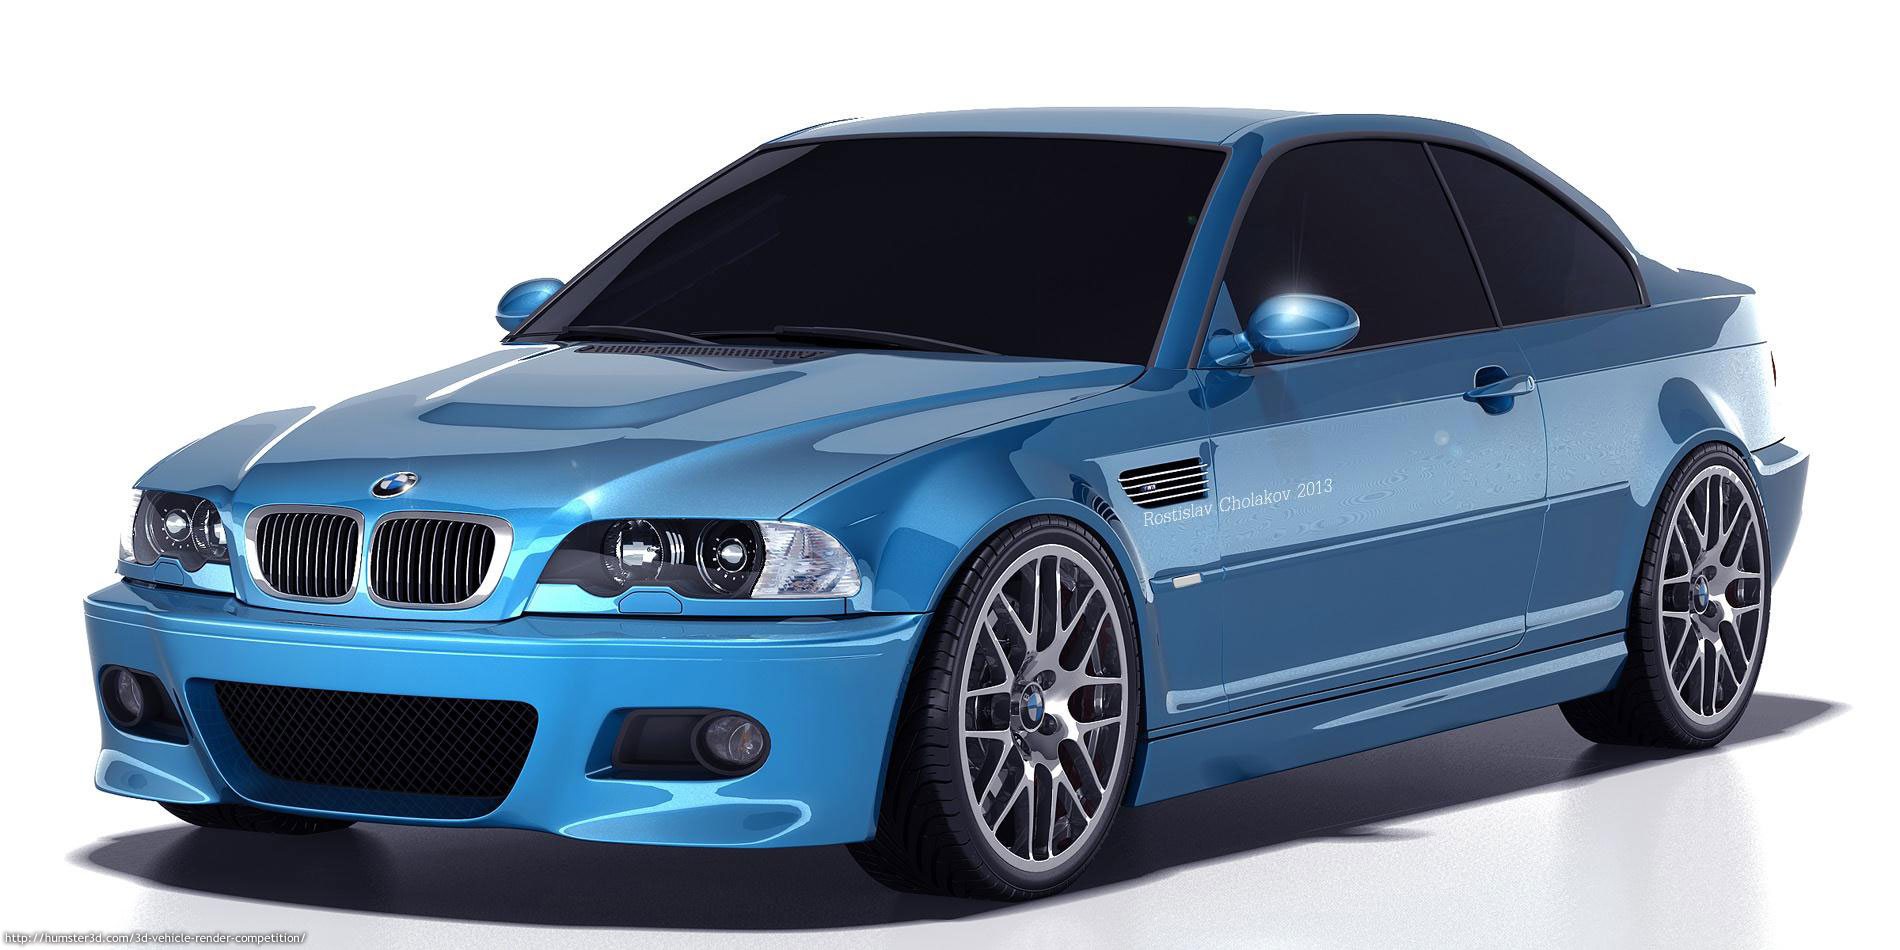 BMW M3 E46 Render 3d art